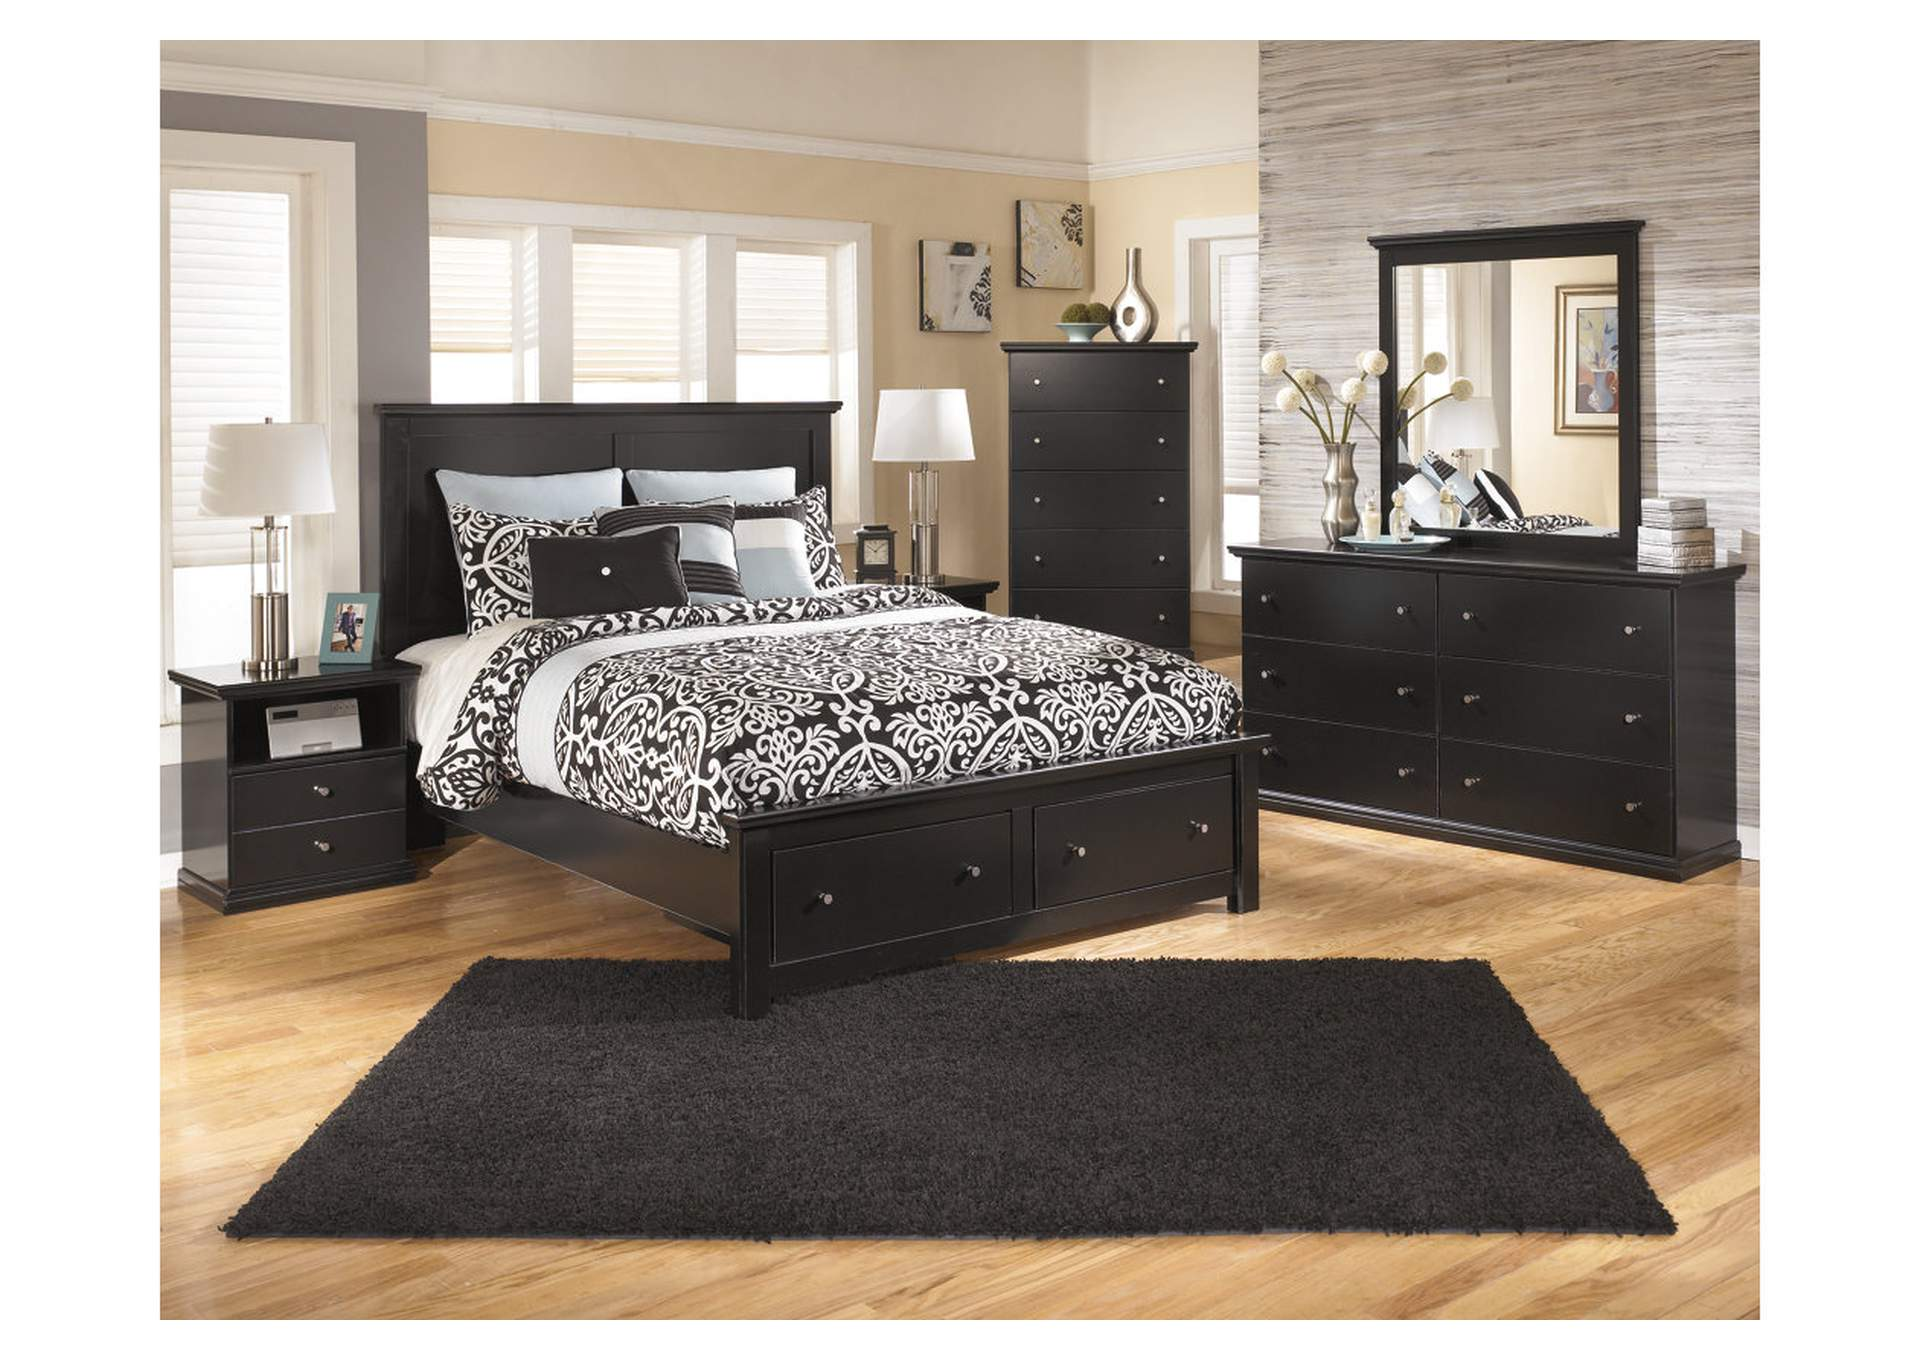 Maribel Black Queen Storage Platform Bed w/Dresser, Mirror & Drawer Chest,Signature Design By Ashley